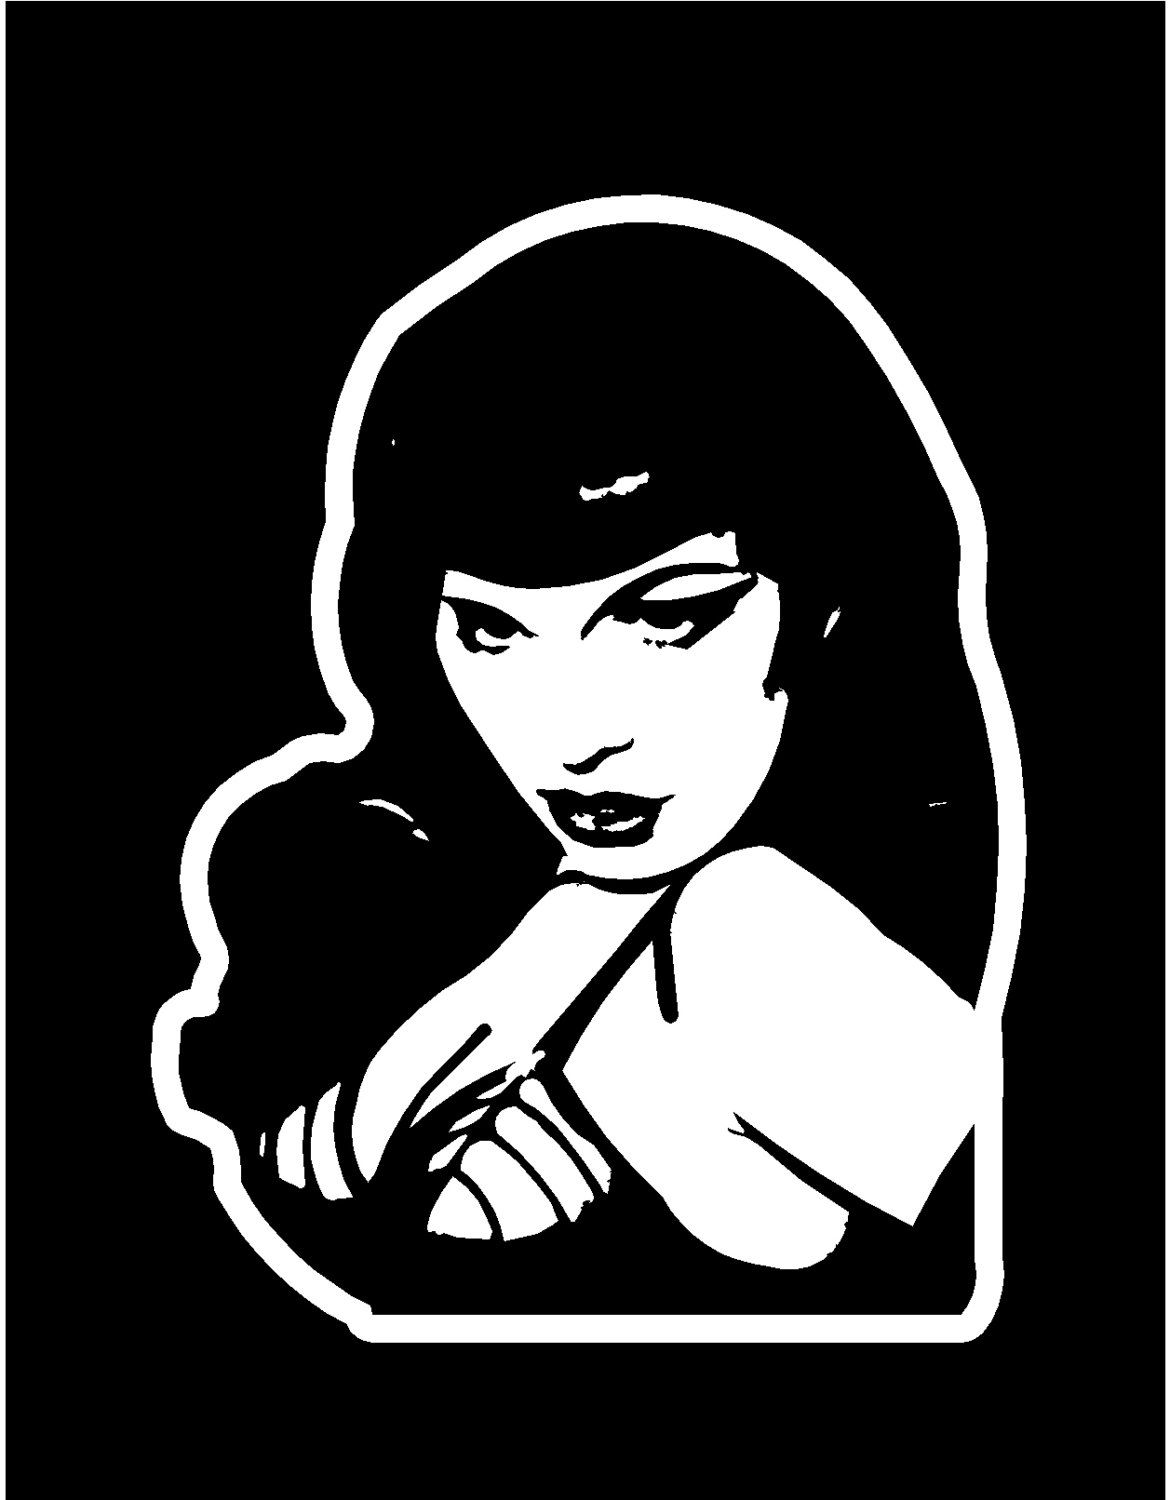 Bettie Page Decal Windows Cars Trucks Tailgates Laptop Bumper